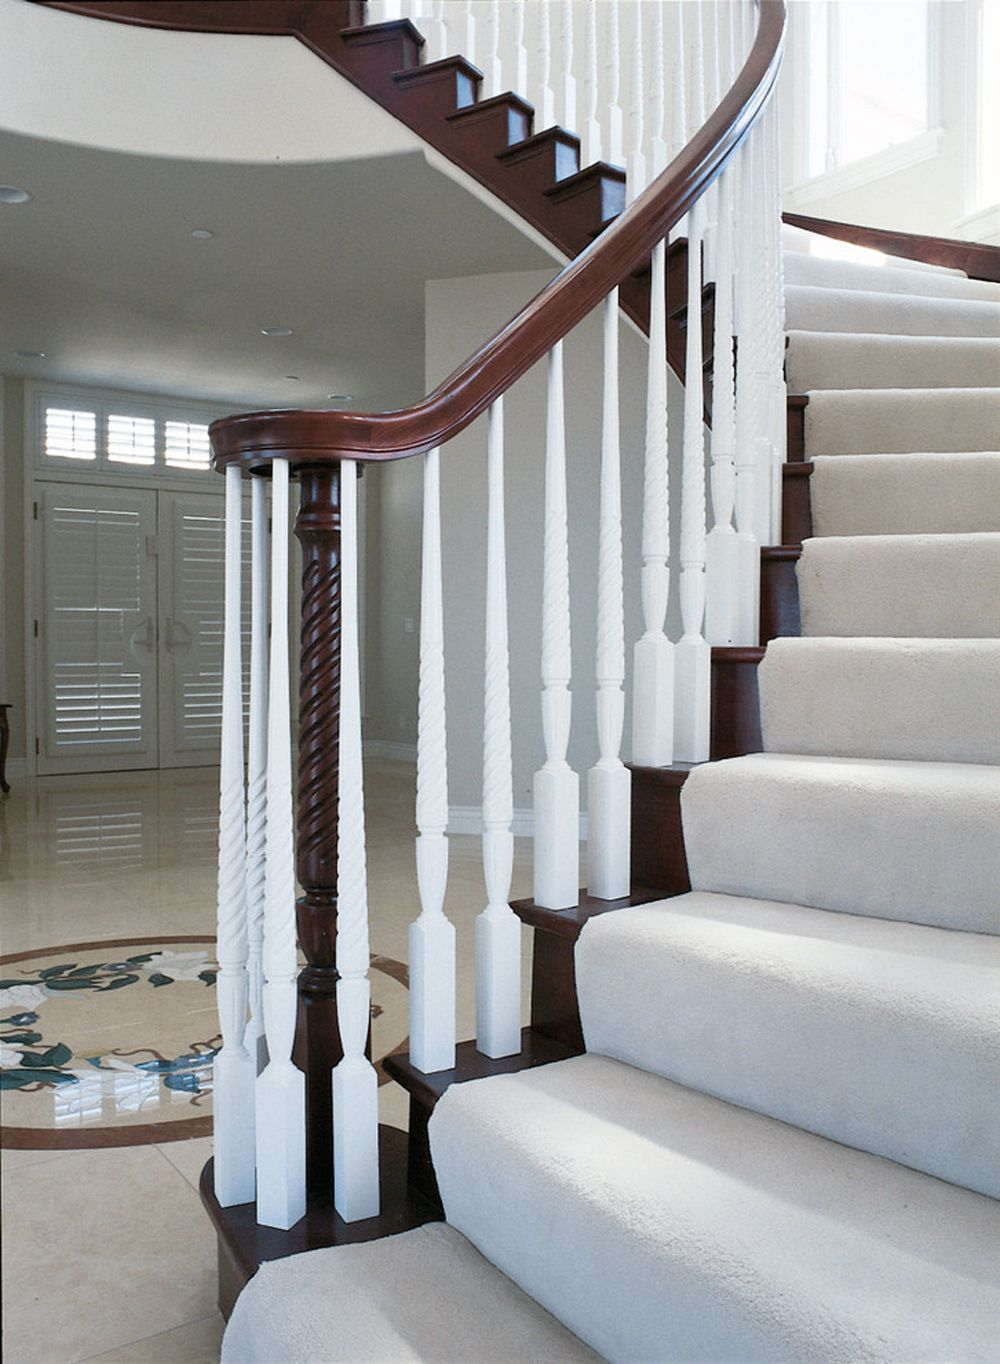 Carpet For Stairs How To Pick The Best One Out There Mit | Best Carpet For High Traffic Areas Stairs